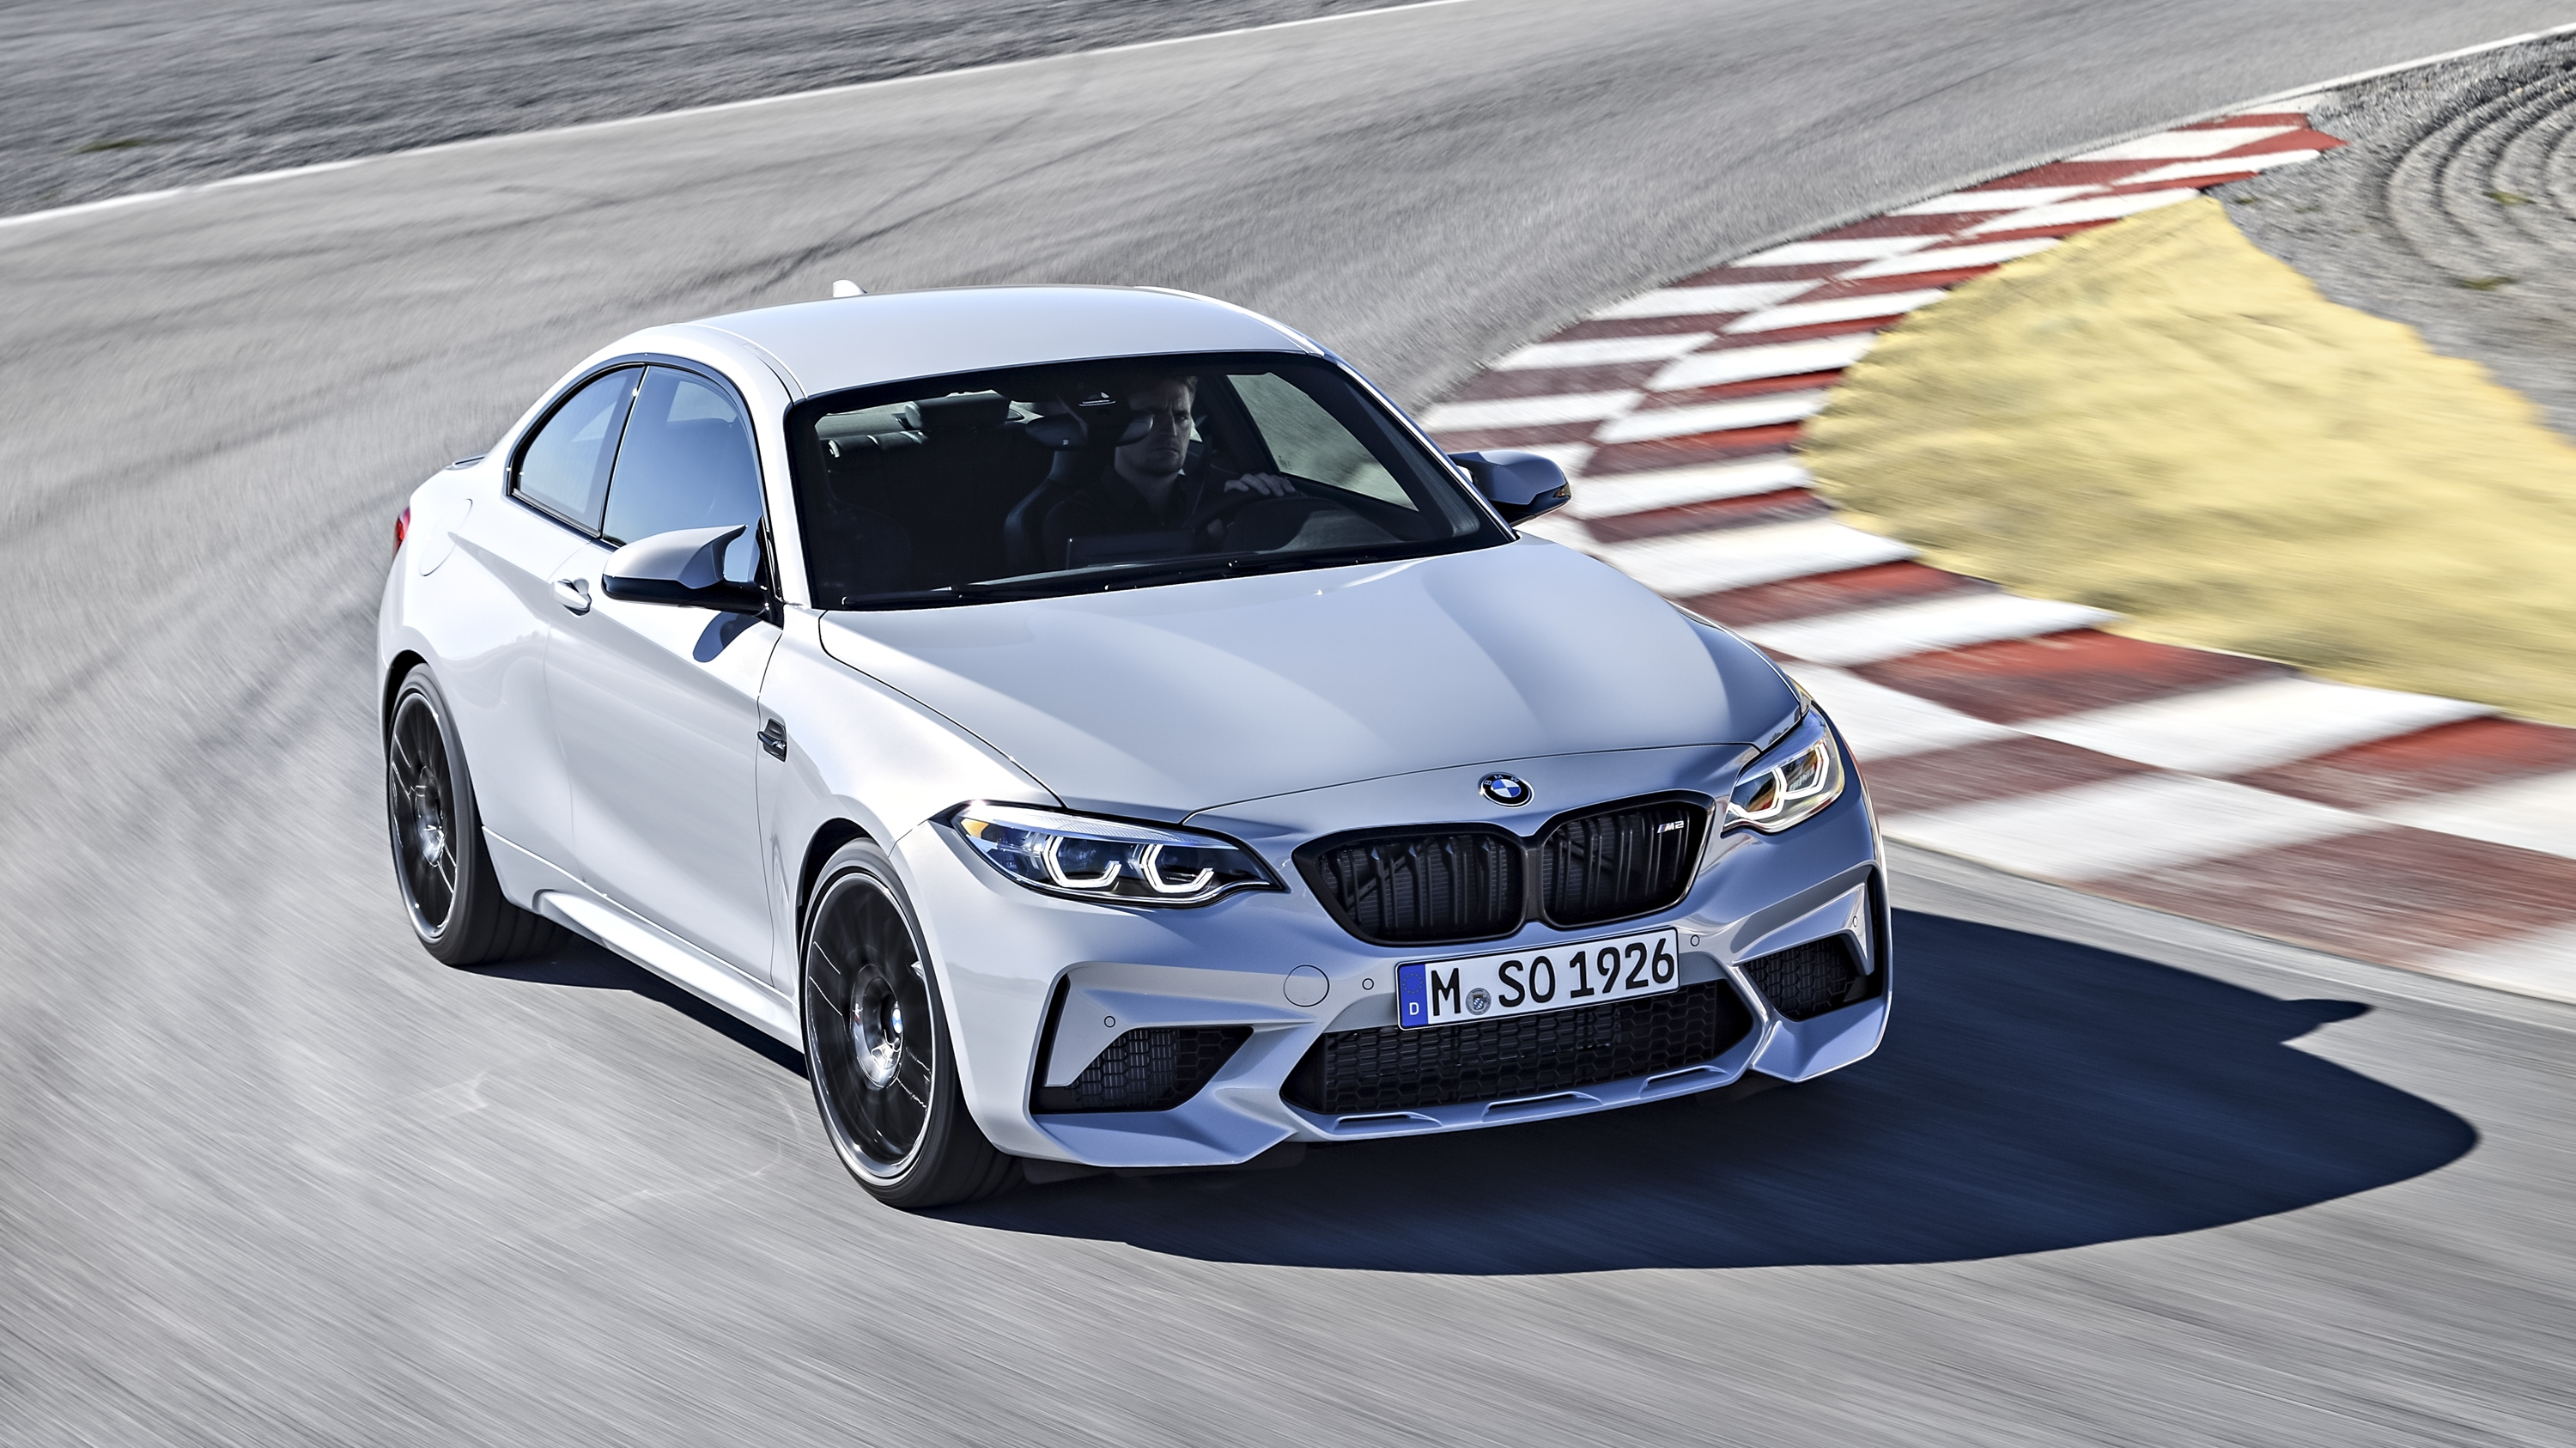 2019 BMW M2 Competition Pictures, Photos, Wallpapers